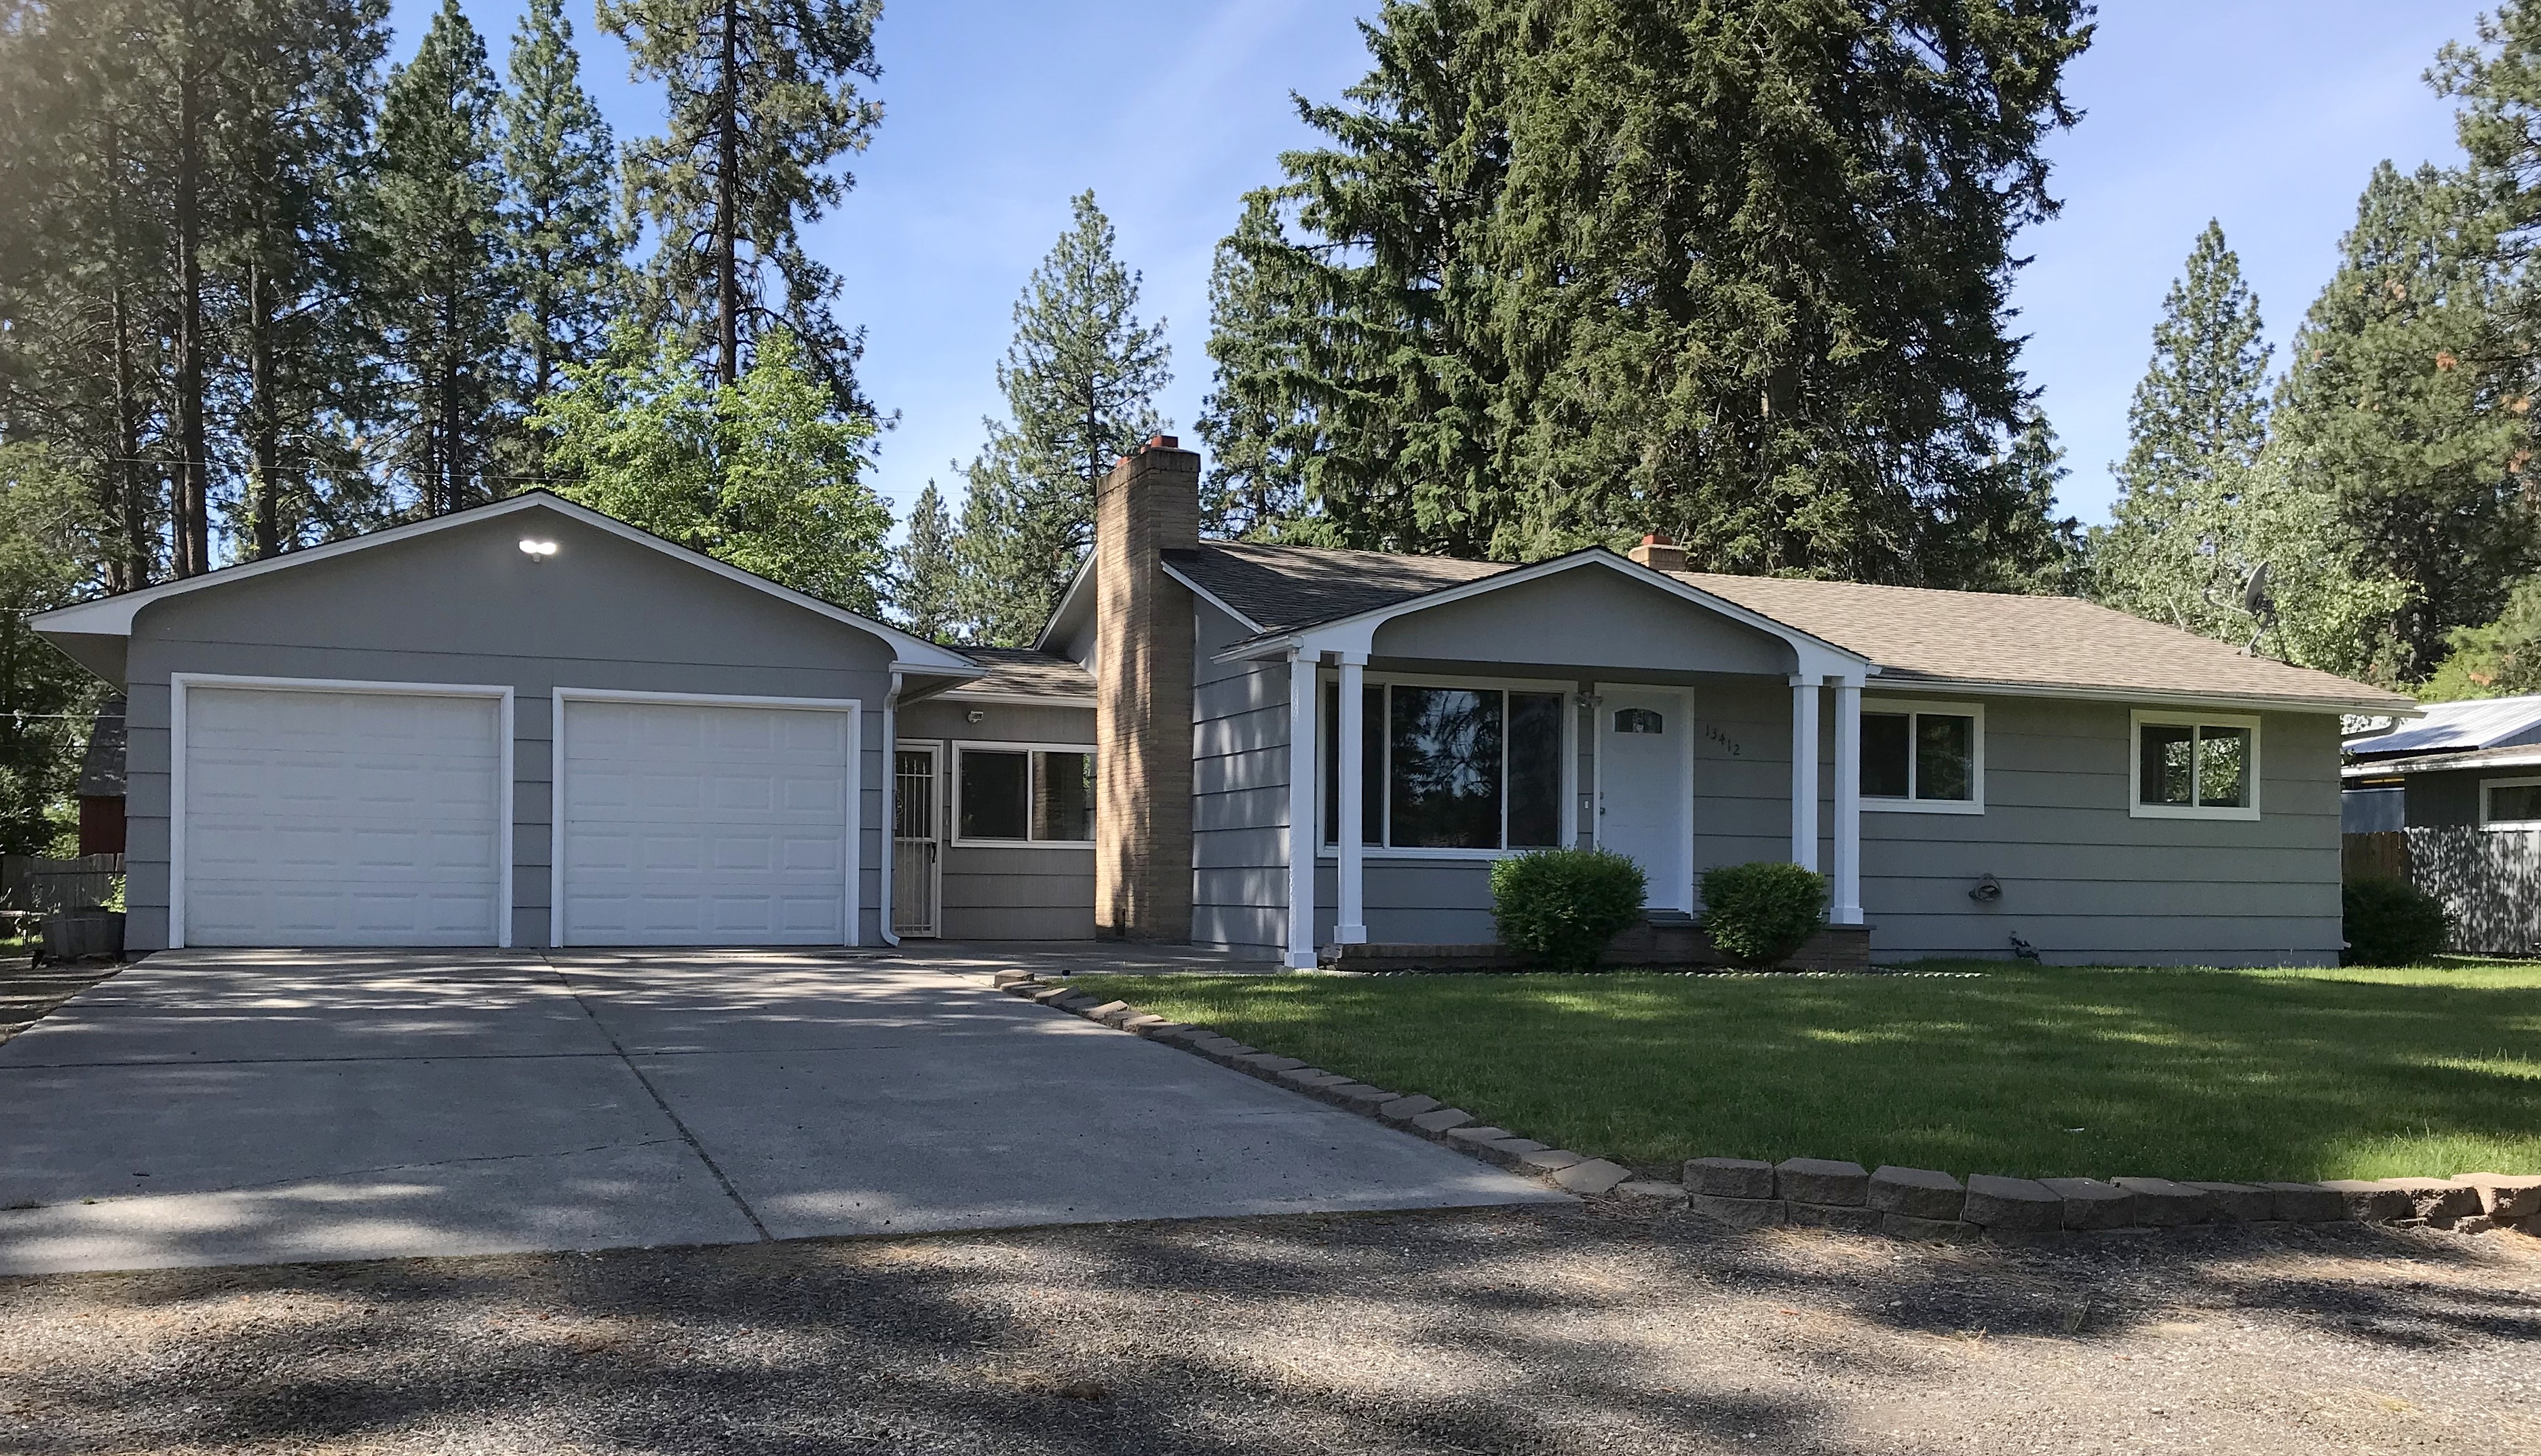 Pet Friendly Houses For Rent In Spokane Valley Wa